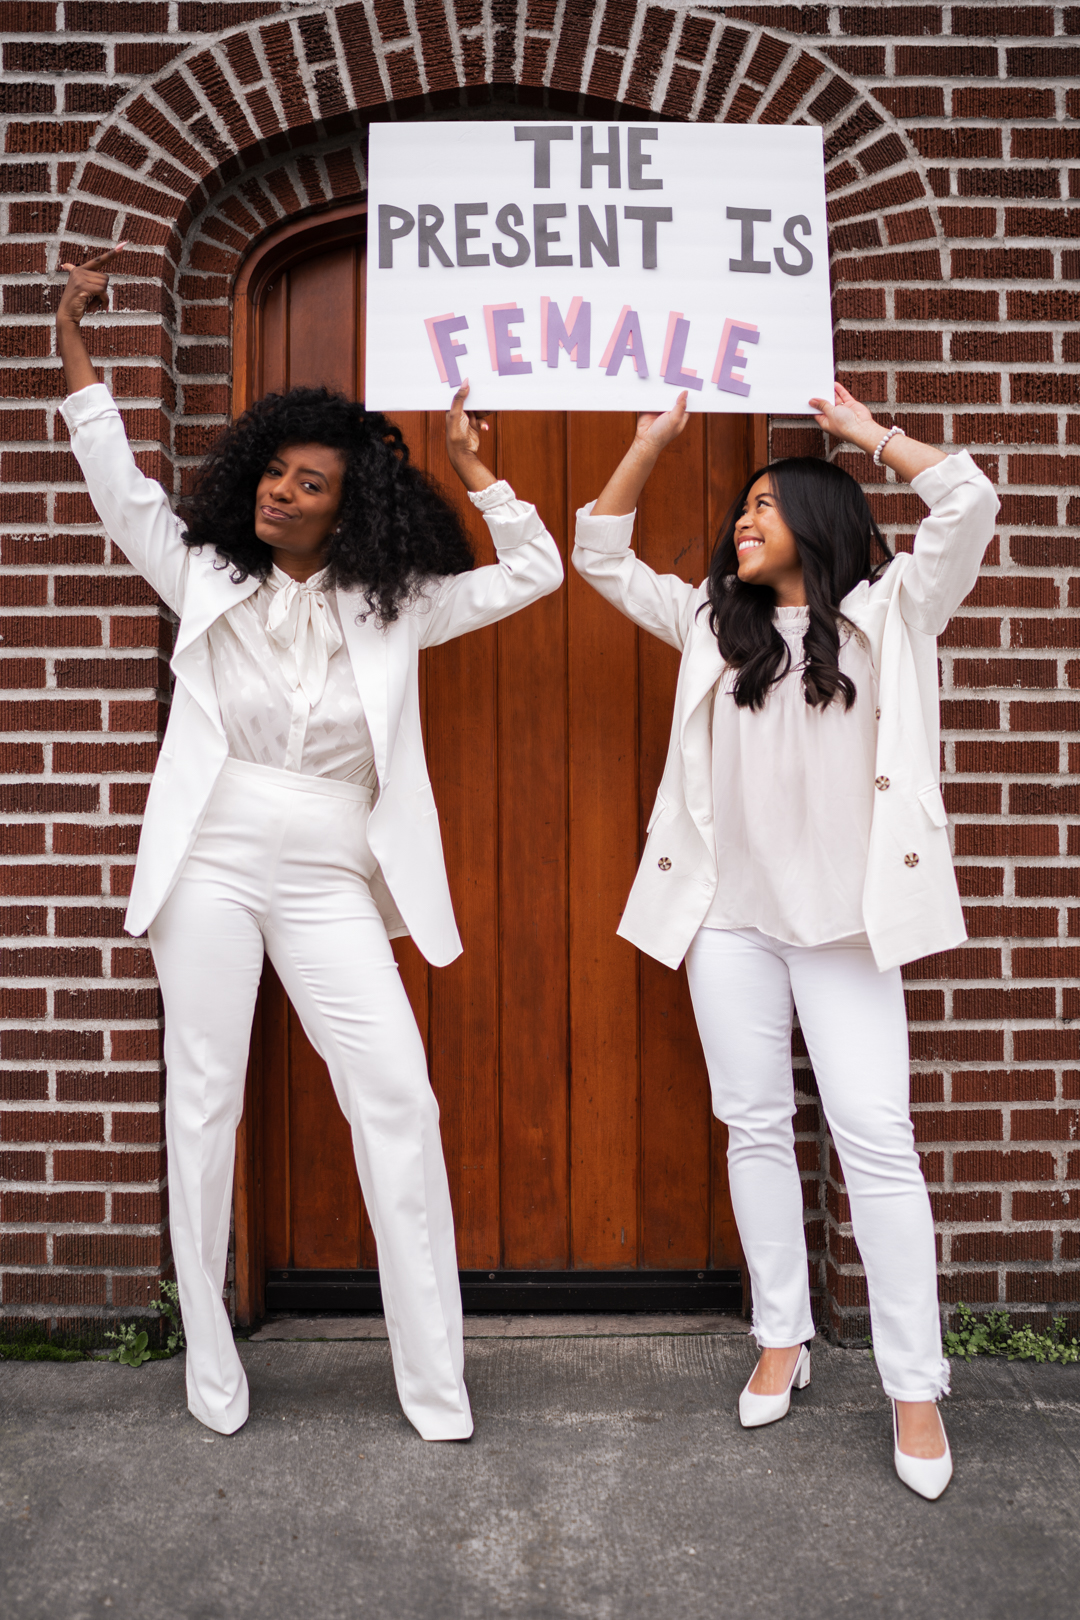 The Present is Female - Inauguration Day 2021 - Kamala Harris inspired outfit - Women in White Suits - image from www.emmasedition.com - copyright @emmasedition